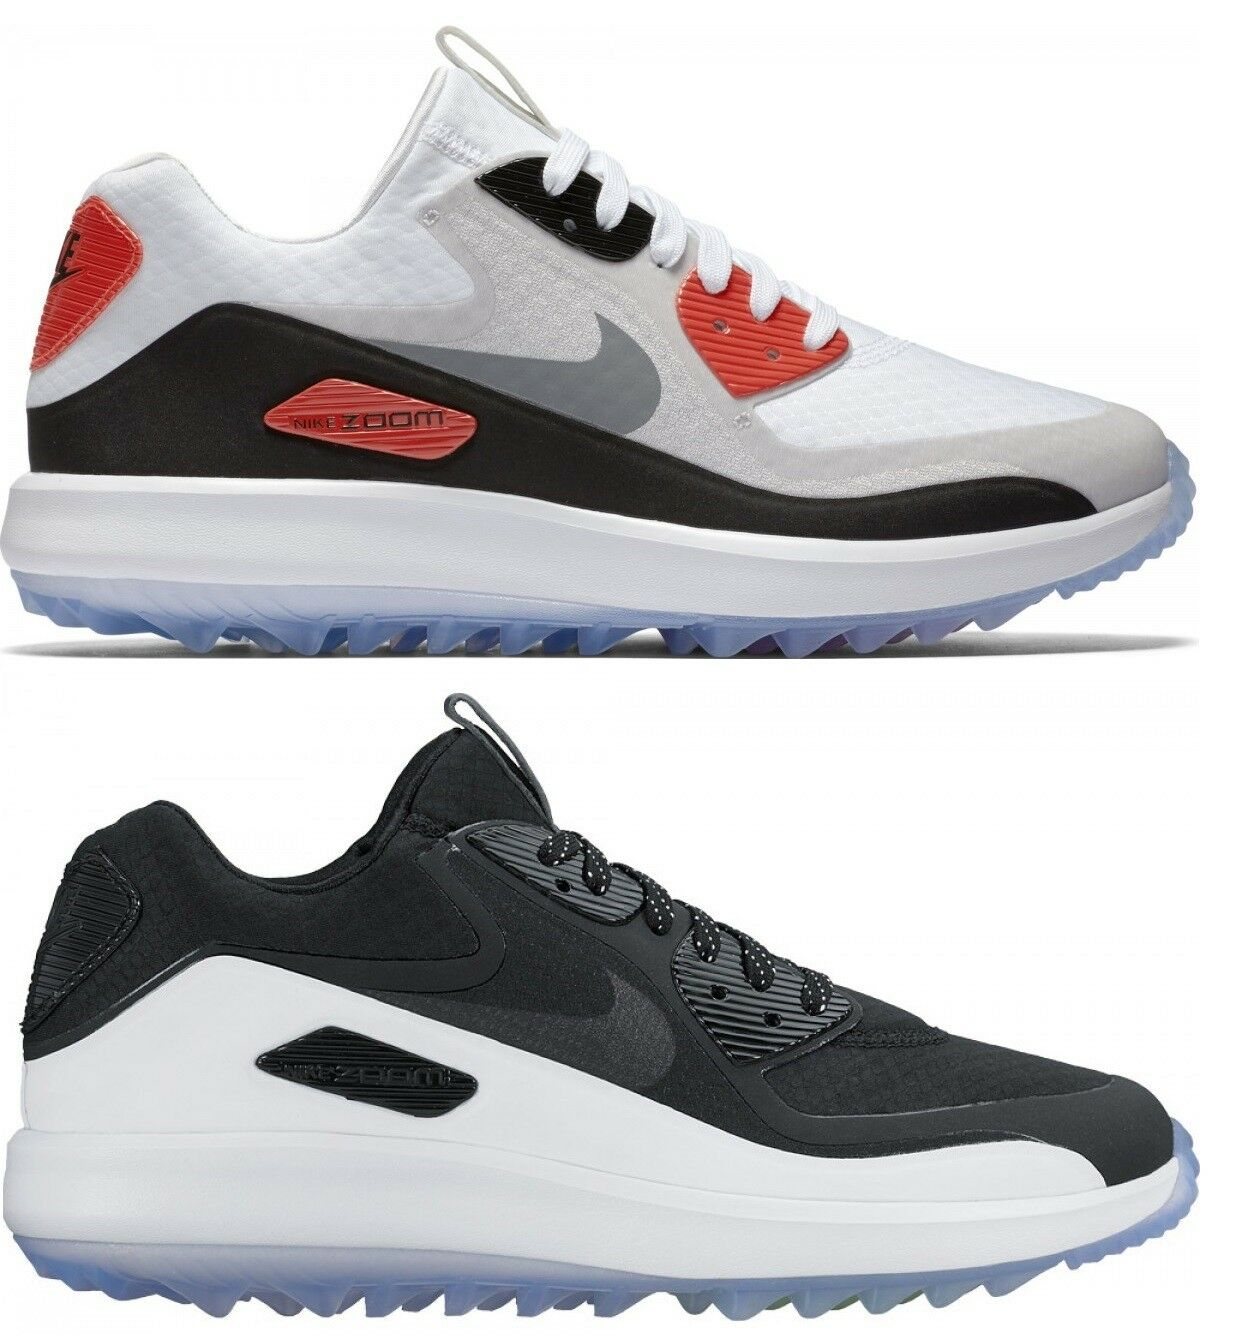 New Womens Nike Air Zoom 90 IT Spikeless Golf Shoes MSRP 175